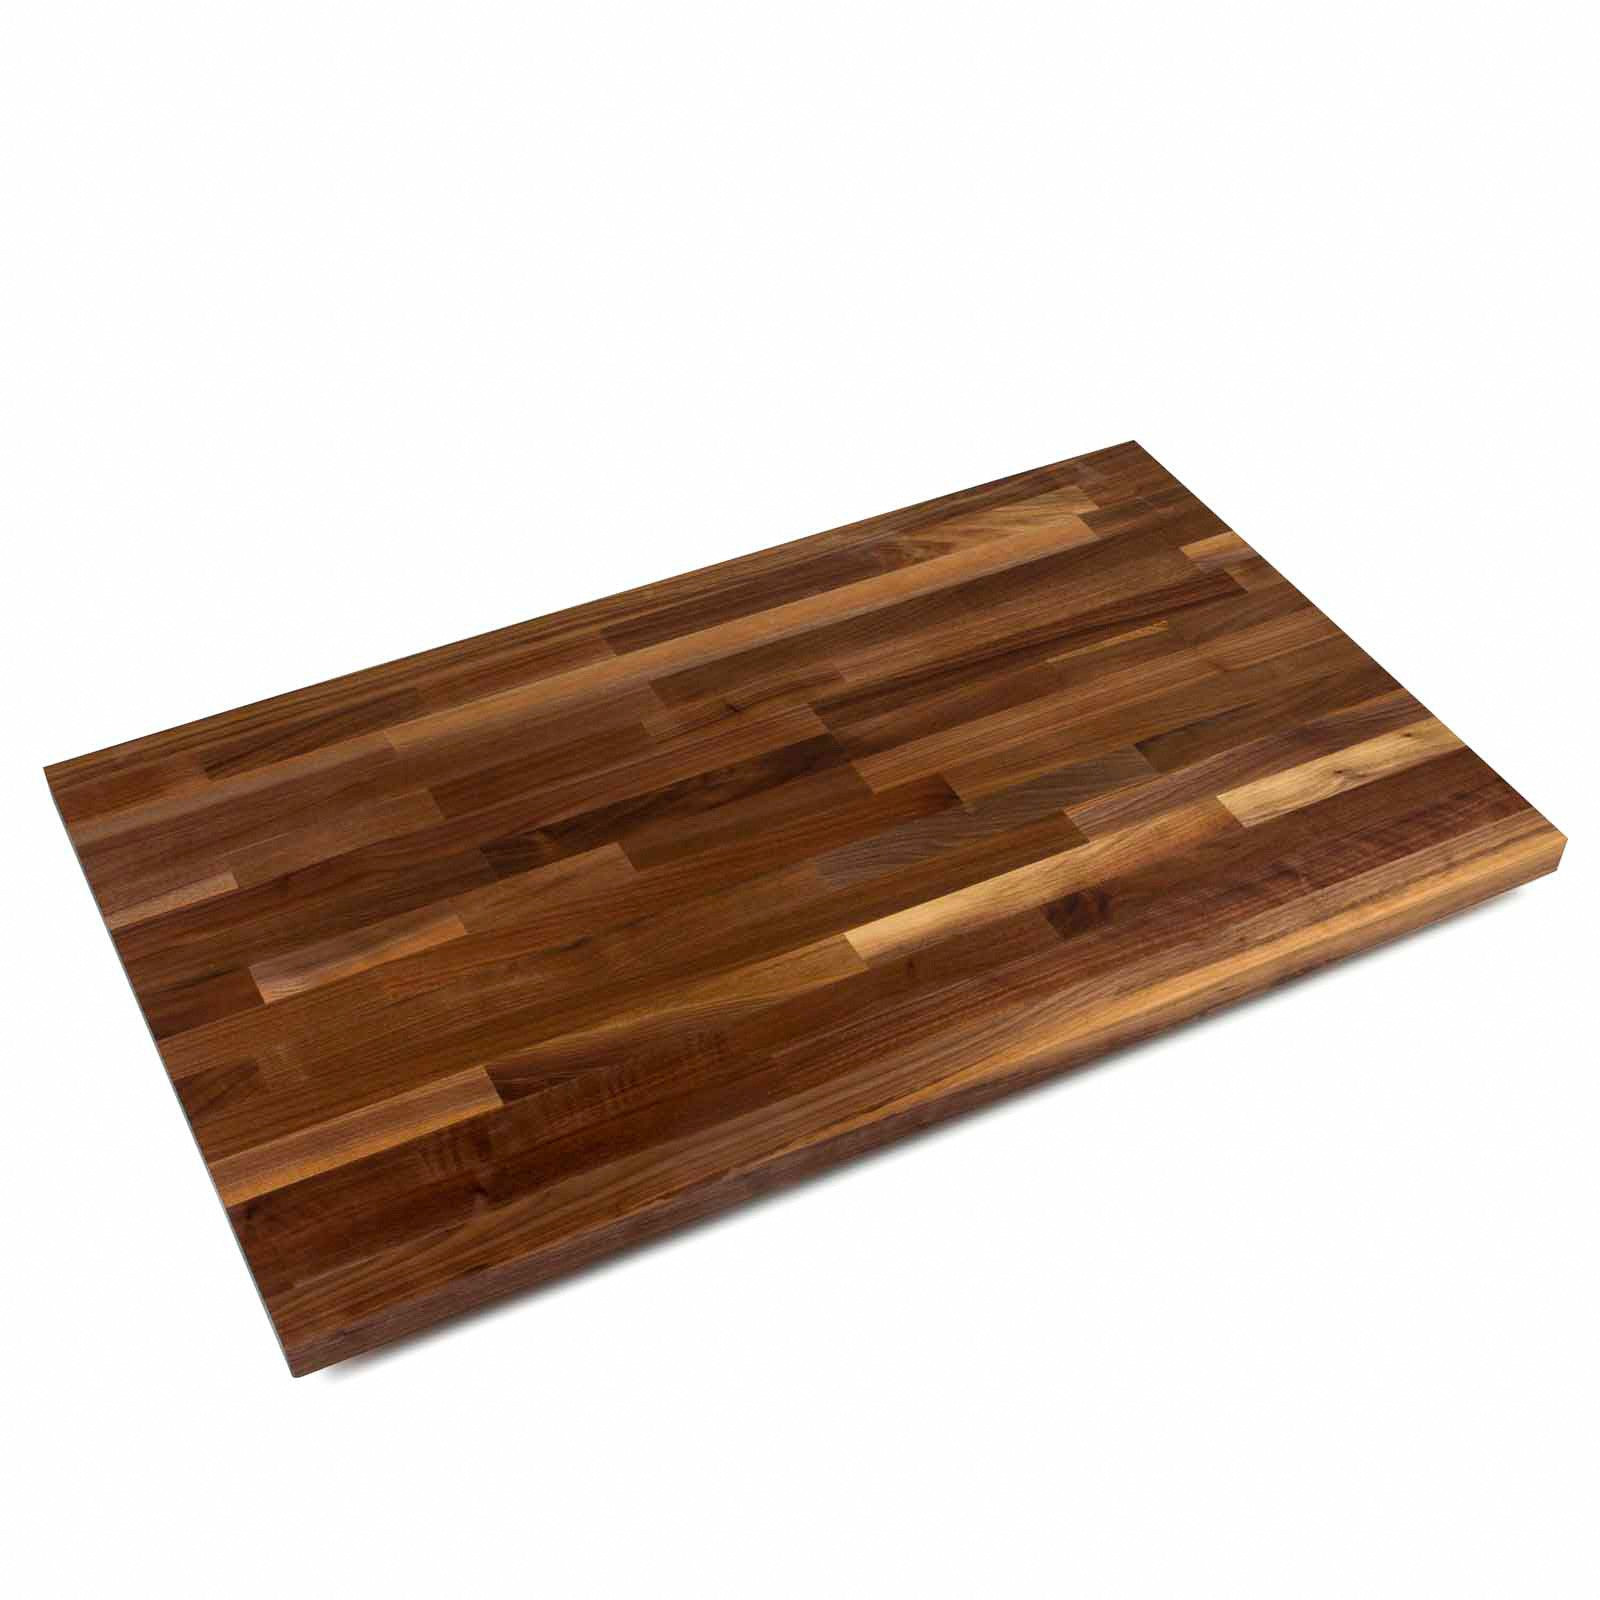 "John Boos 1 1/2"" Thick Blended Walnut Butcher Block Countertop - 38"" Wide"